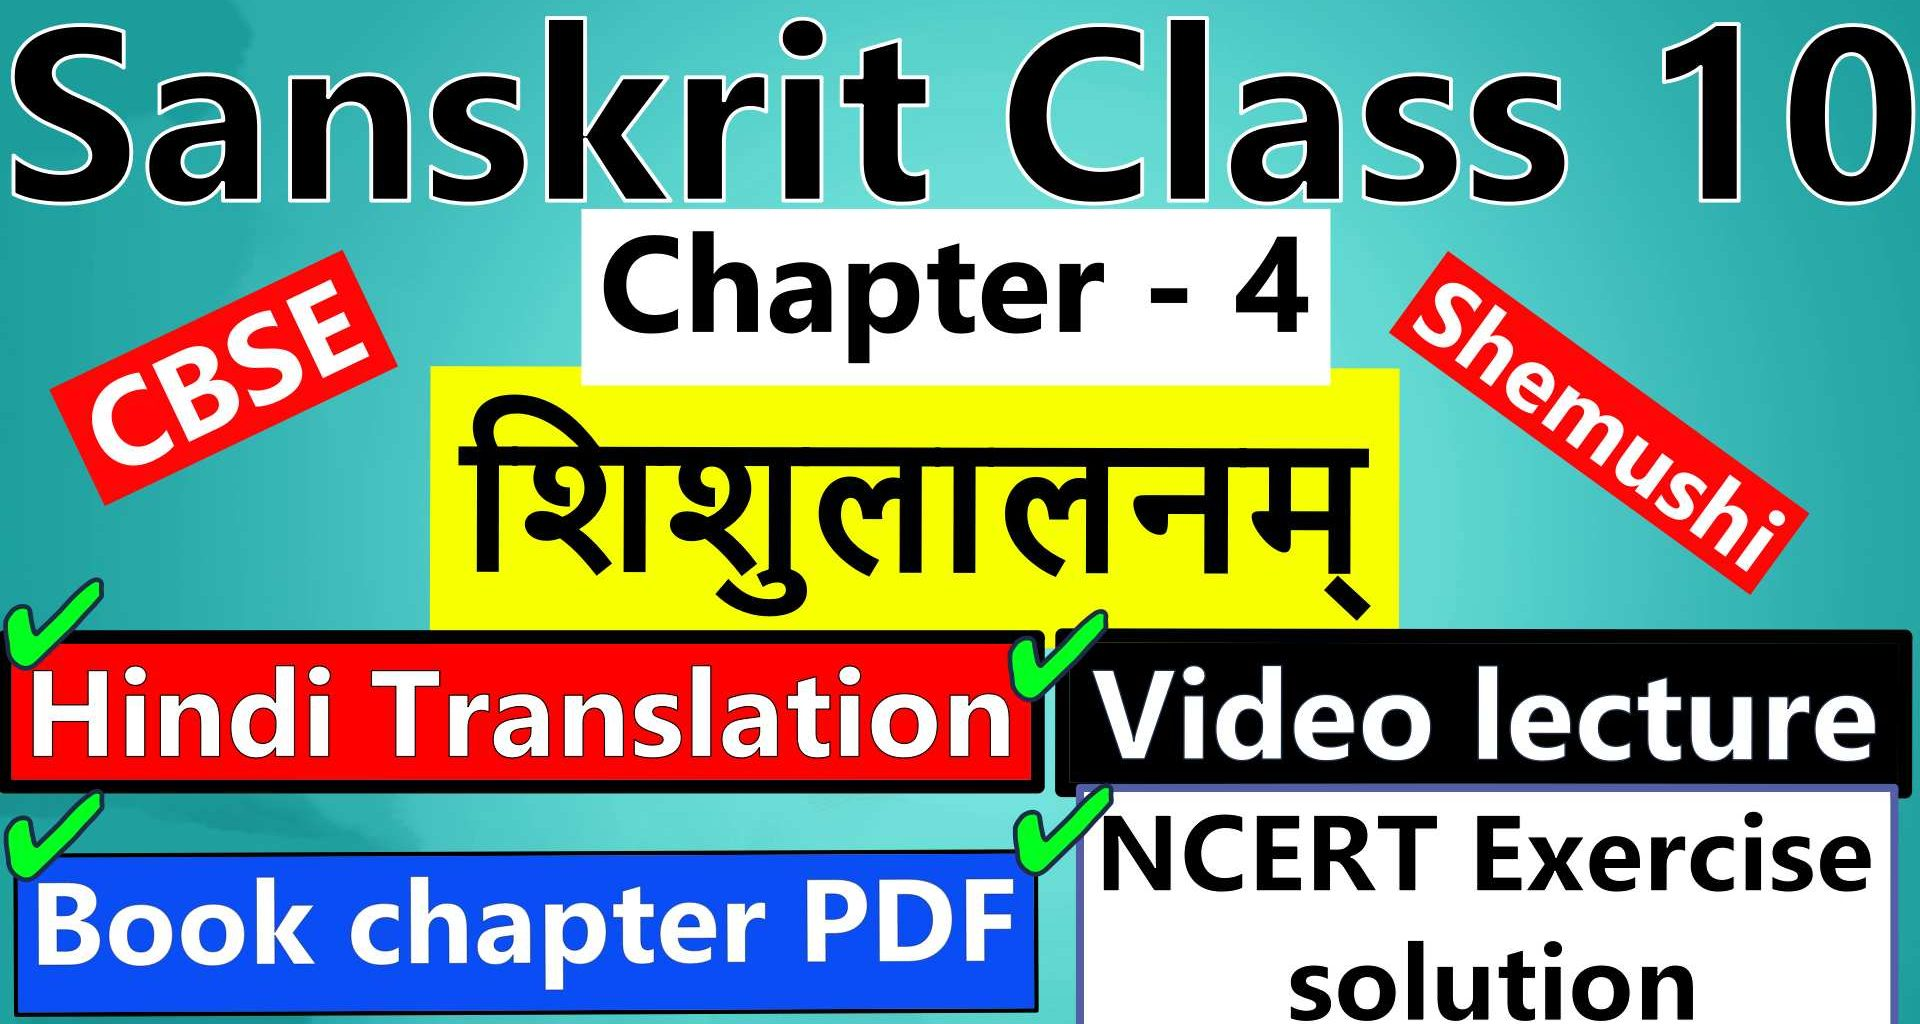 sanskrit-class-10-chapter-4-शिशुलालनम्-Hindi-Translation-Video-lecture-NCERT-Exercise-Solution-Question-Answer-Book-chapter-PDF